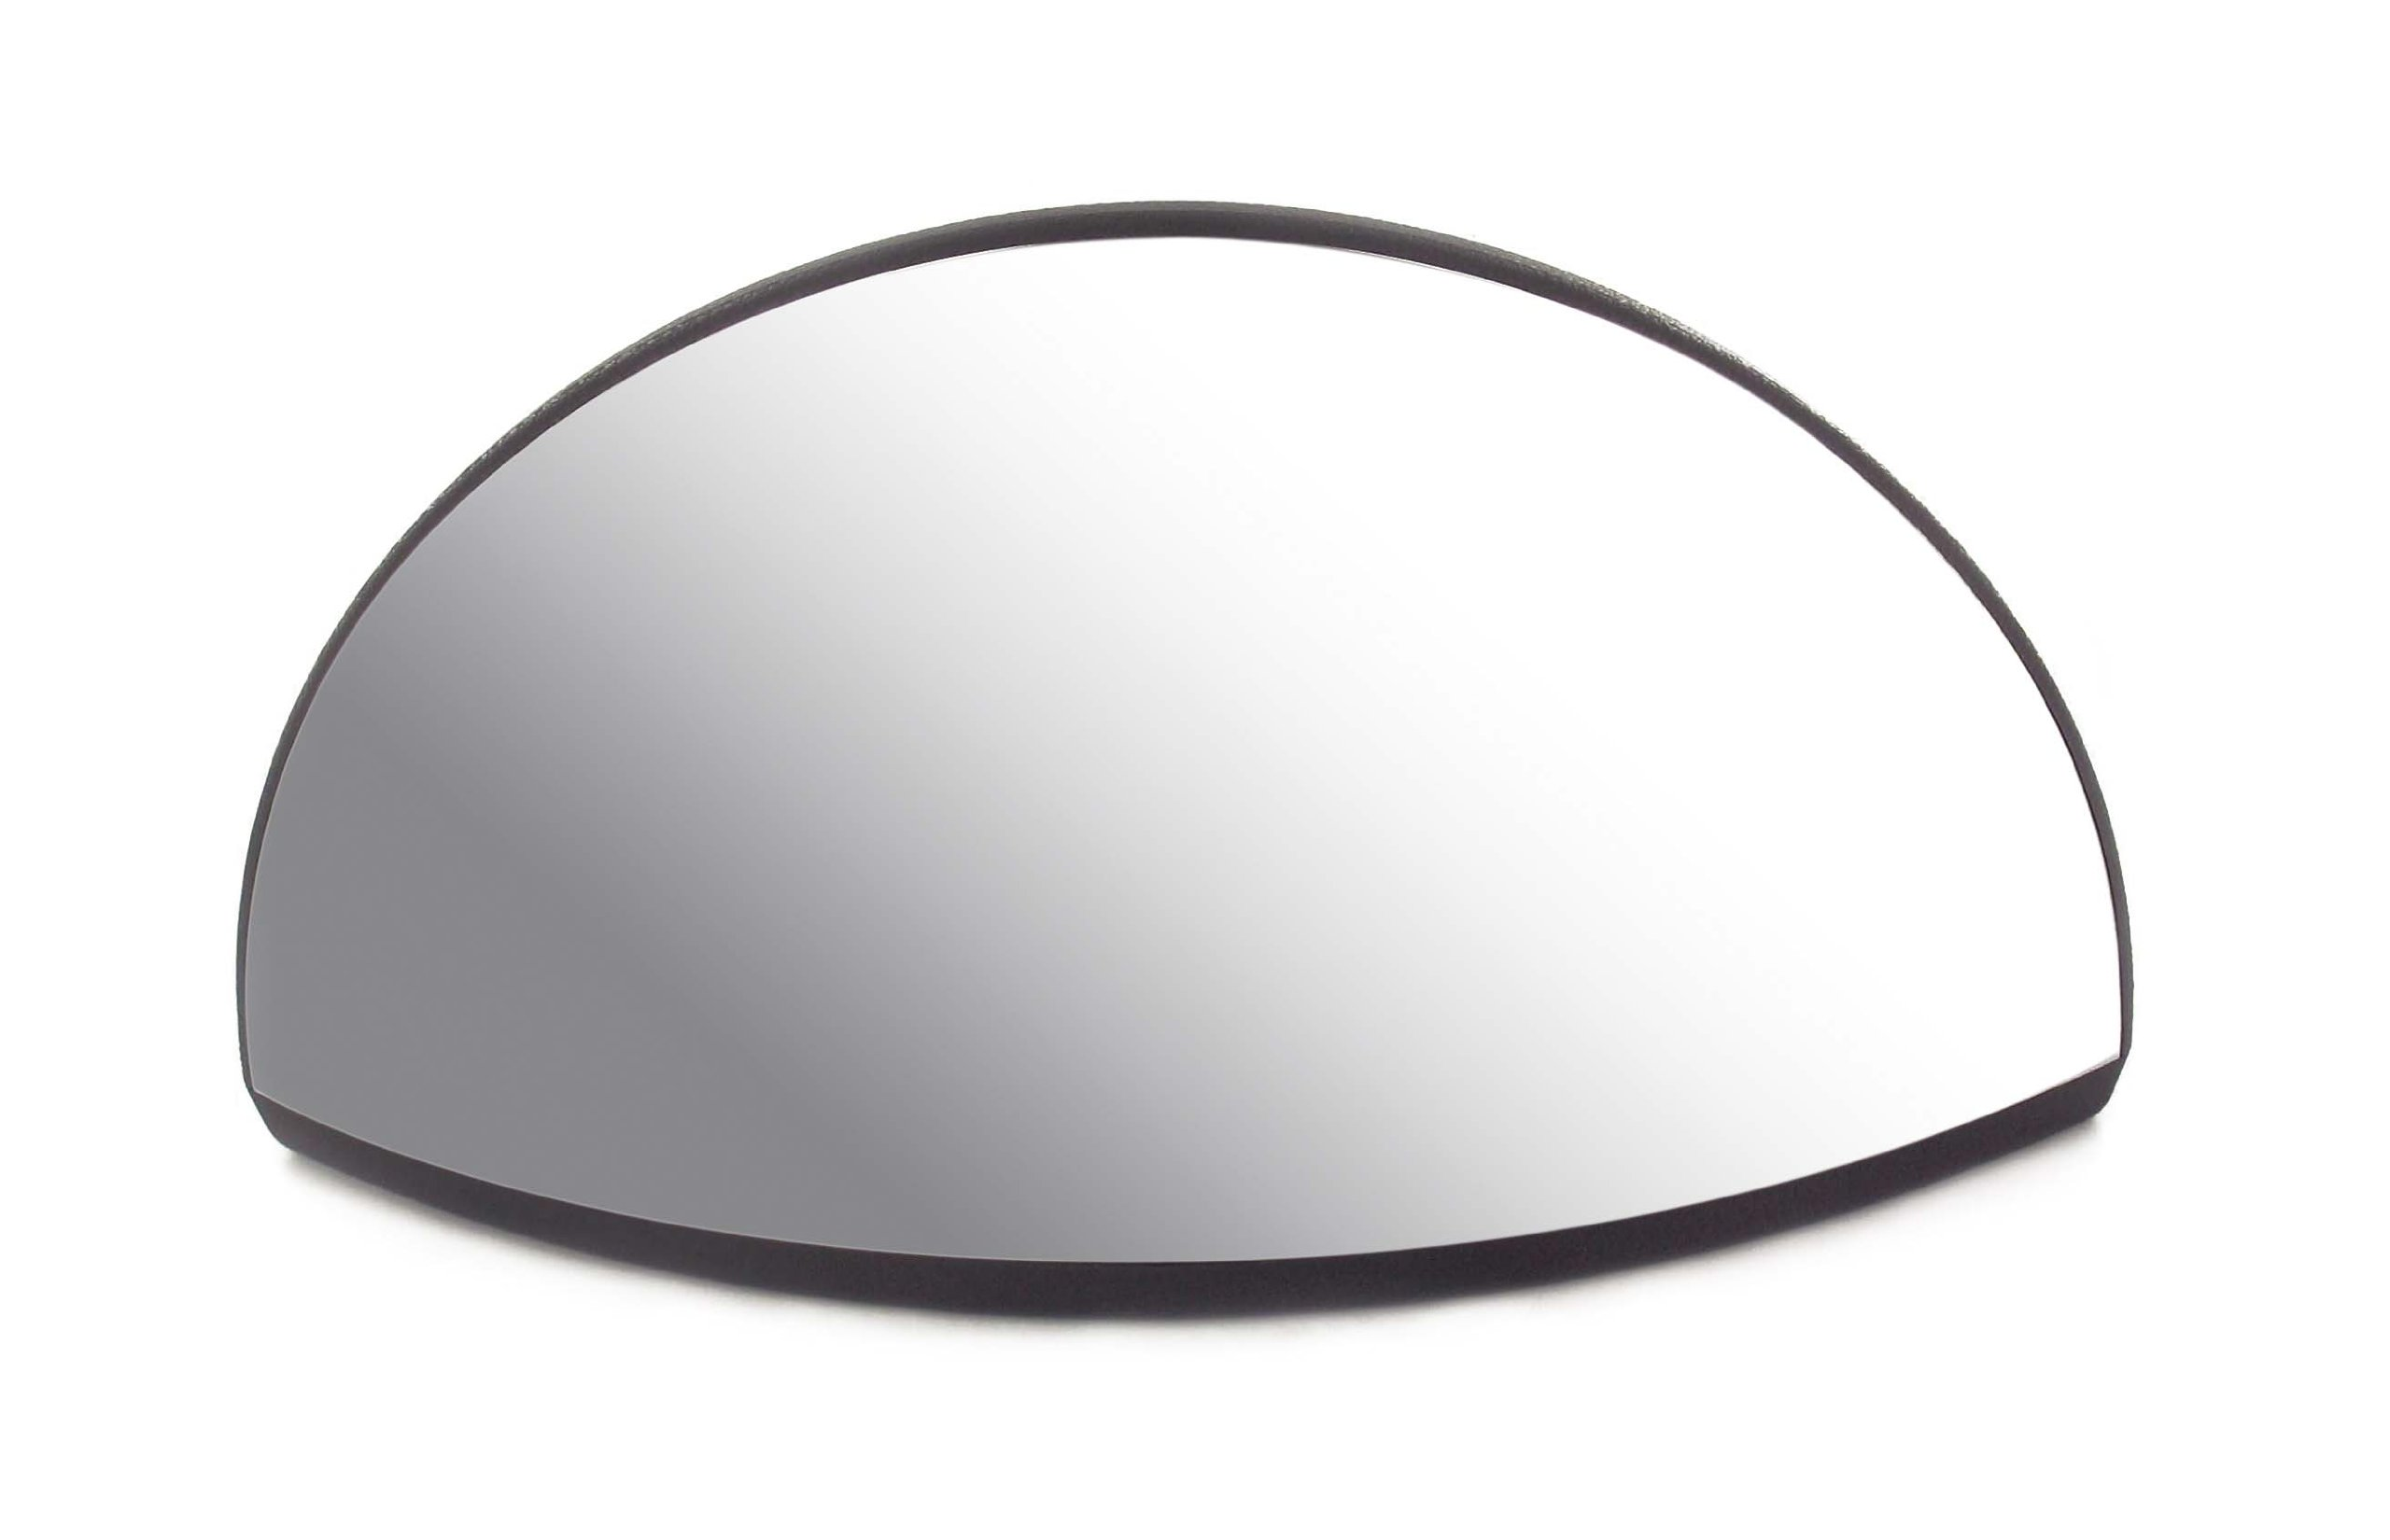 Forklift Panoramic Polycarbonate Mirror with Mounting Bracket, 247mm Width x 130 mm Height x 44mm Depth